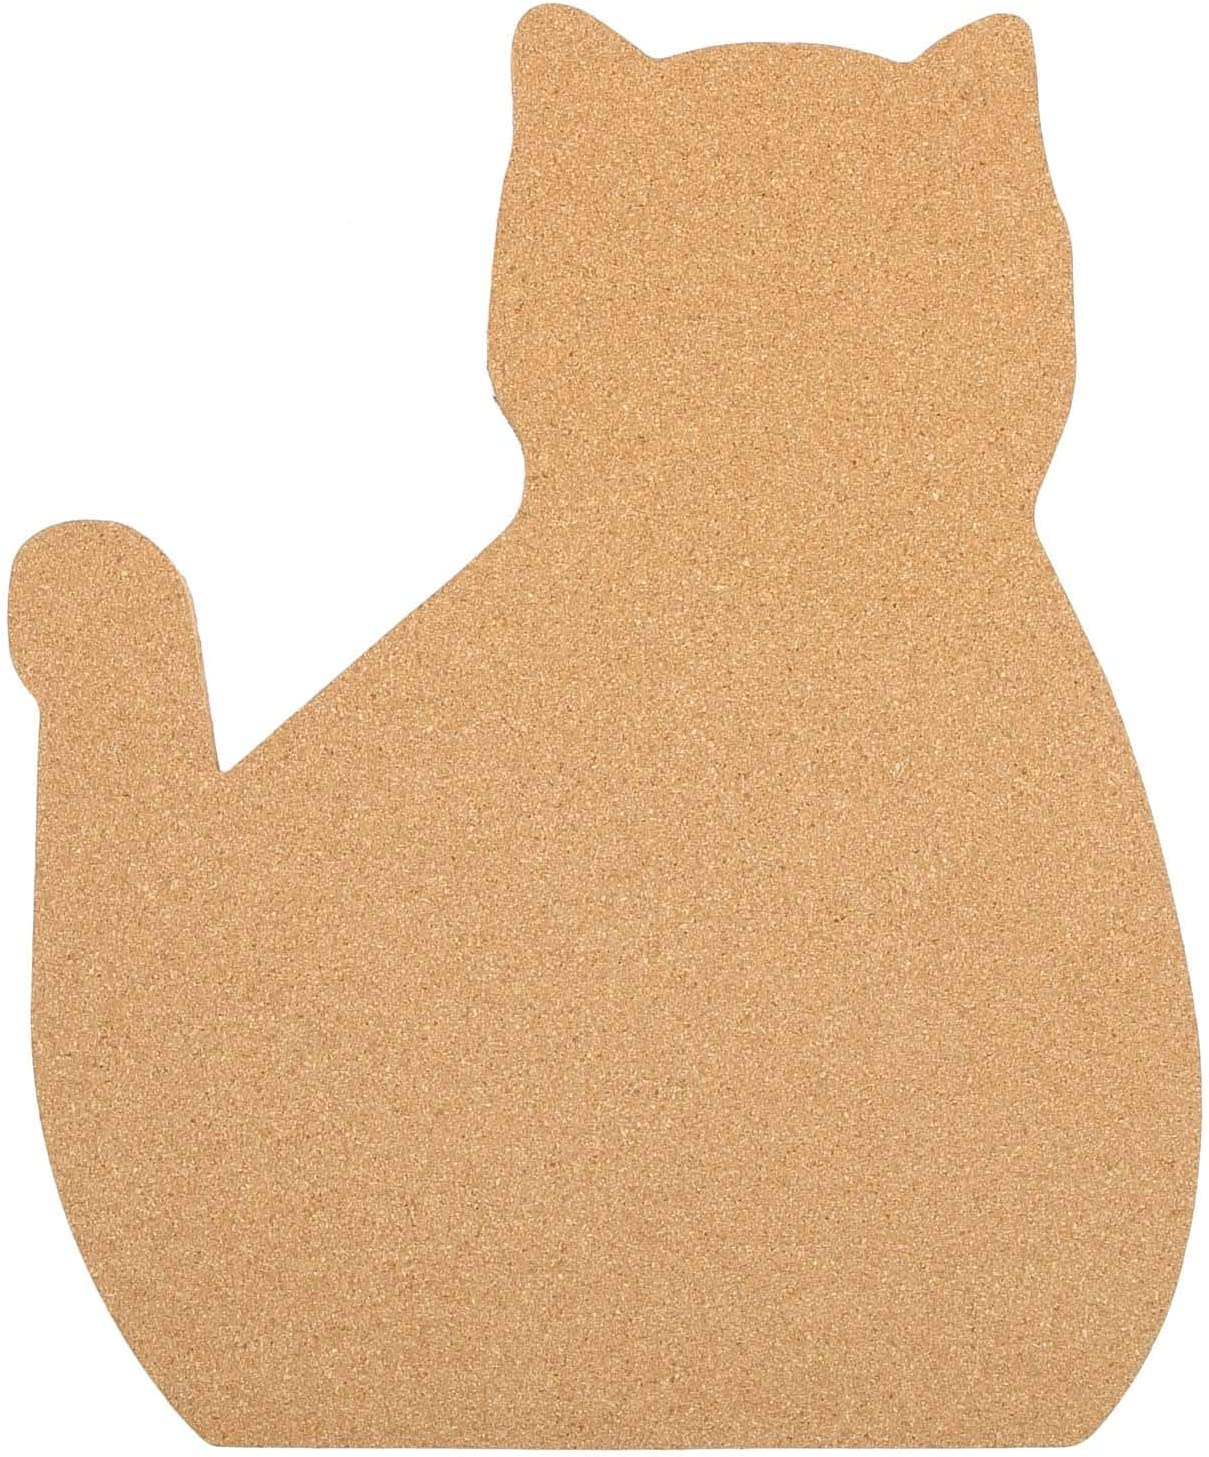 "12"" x 15 "" Cat Shape Large Cork Board Tiles, Thick Cork Board, Gift for Cat Lover, Office Cat Gift, Unique Style Bulletin Board, Ultra Strong Self Adhesive Backing, Bulletin Pin Safe"